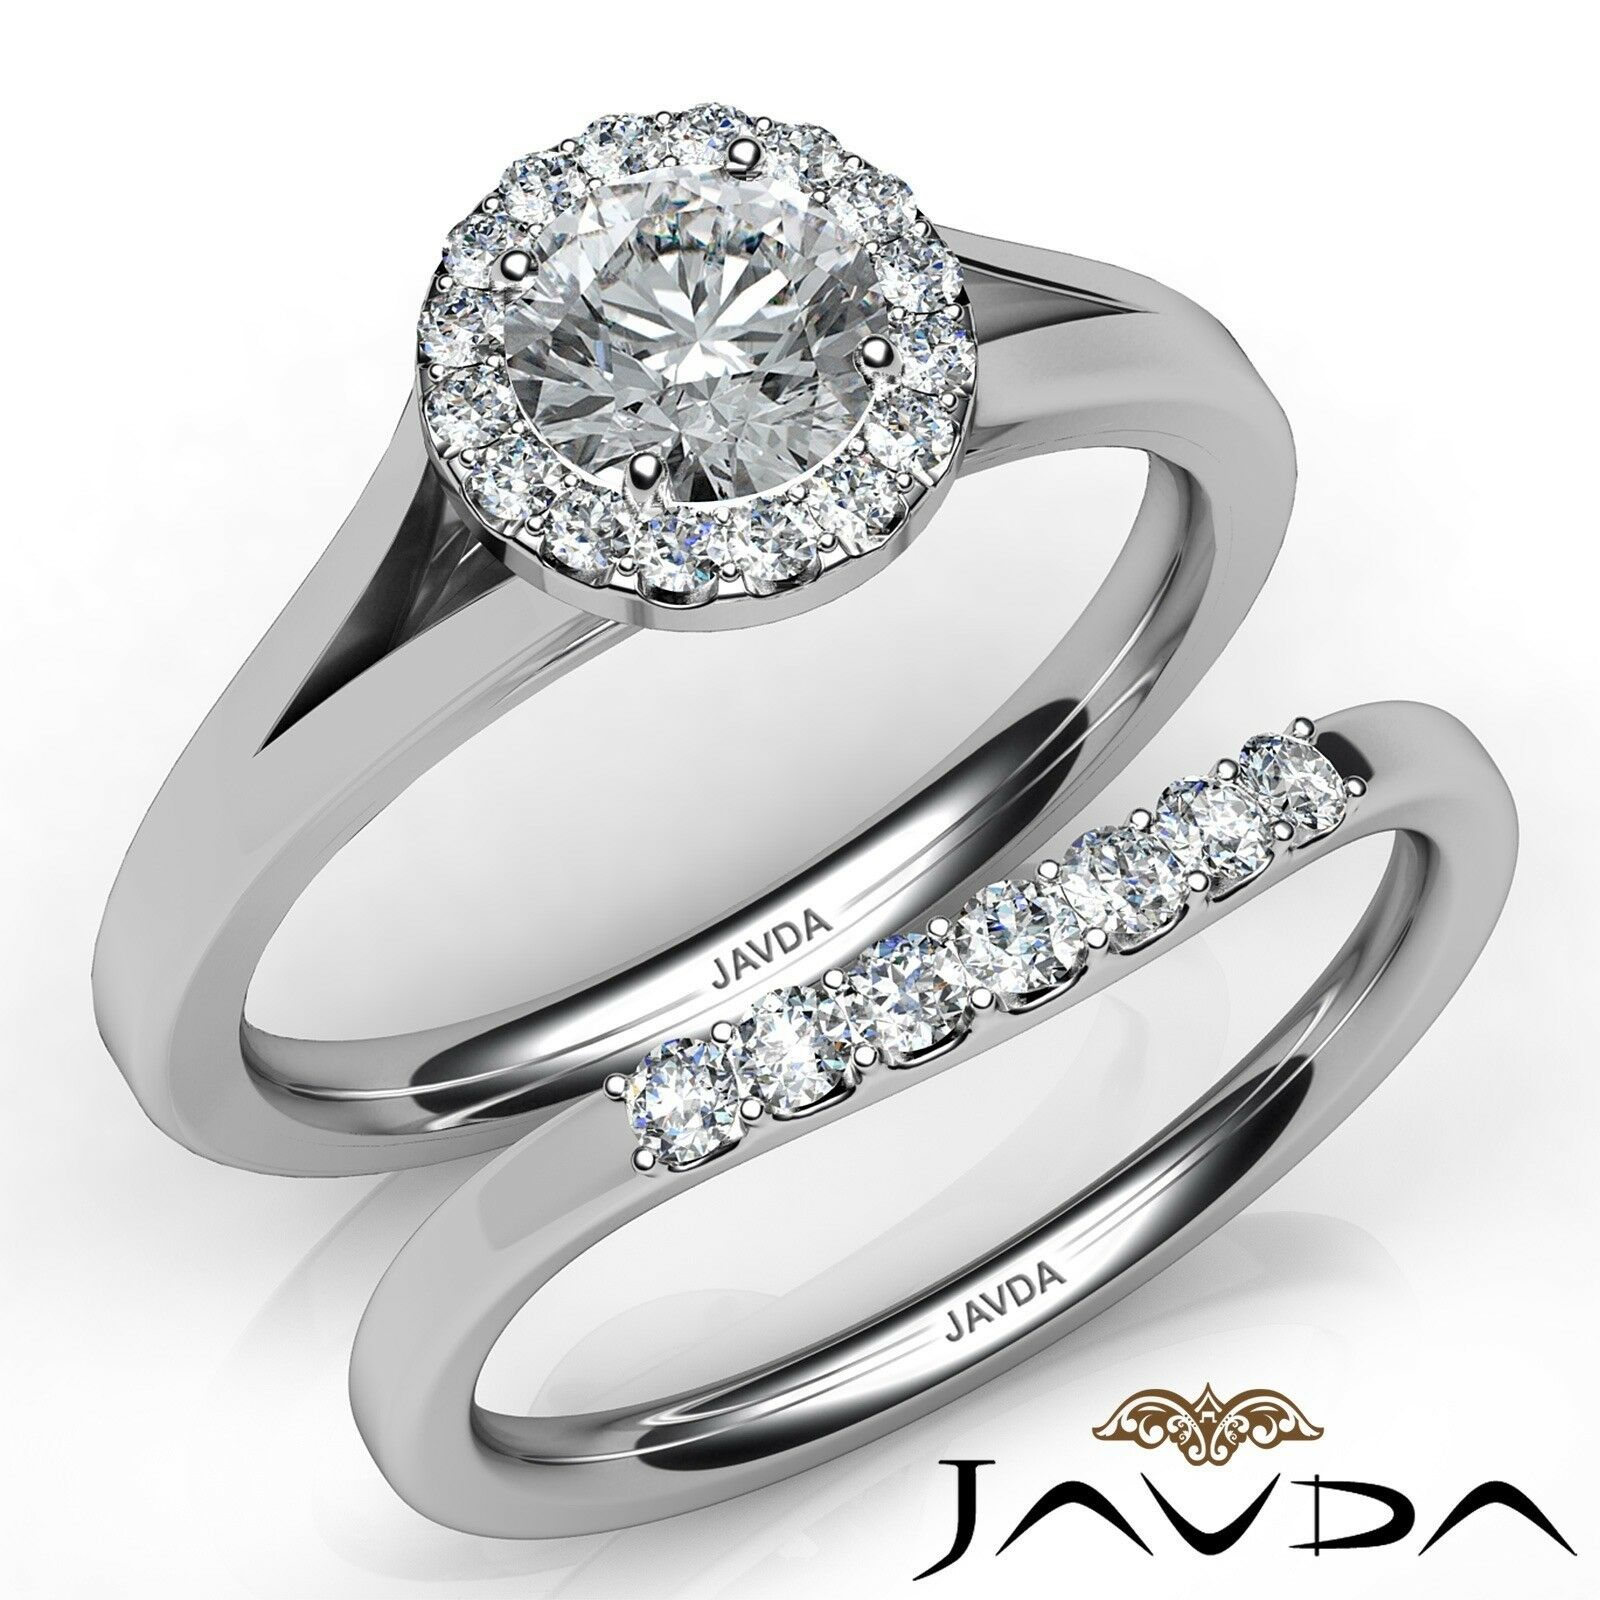 1.12ctw Classic Bridal Halo Pave Round Diamond Engagement Ring GIA G-VVS1 W Gold